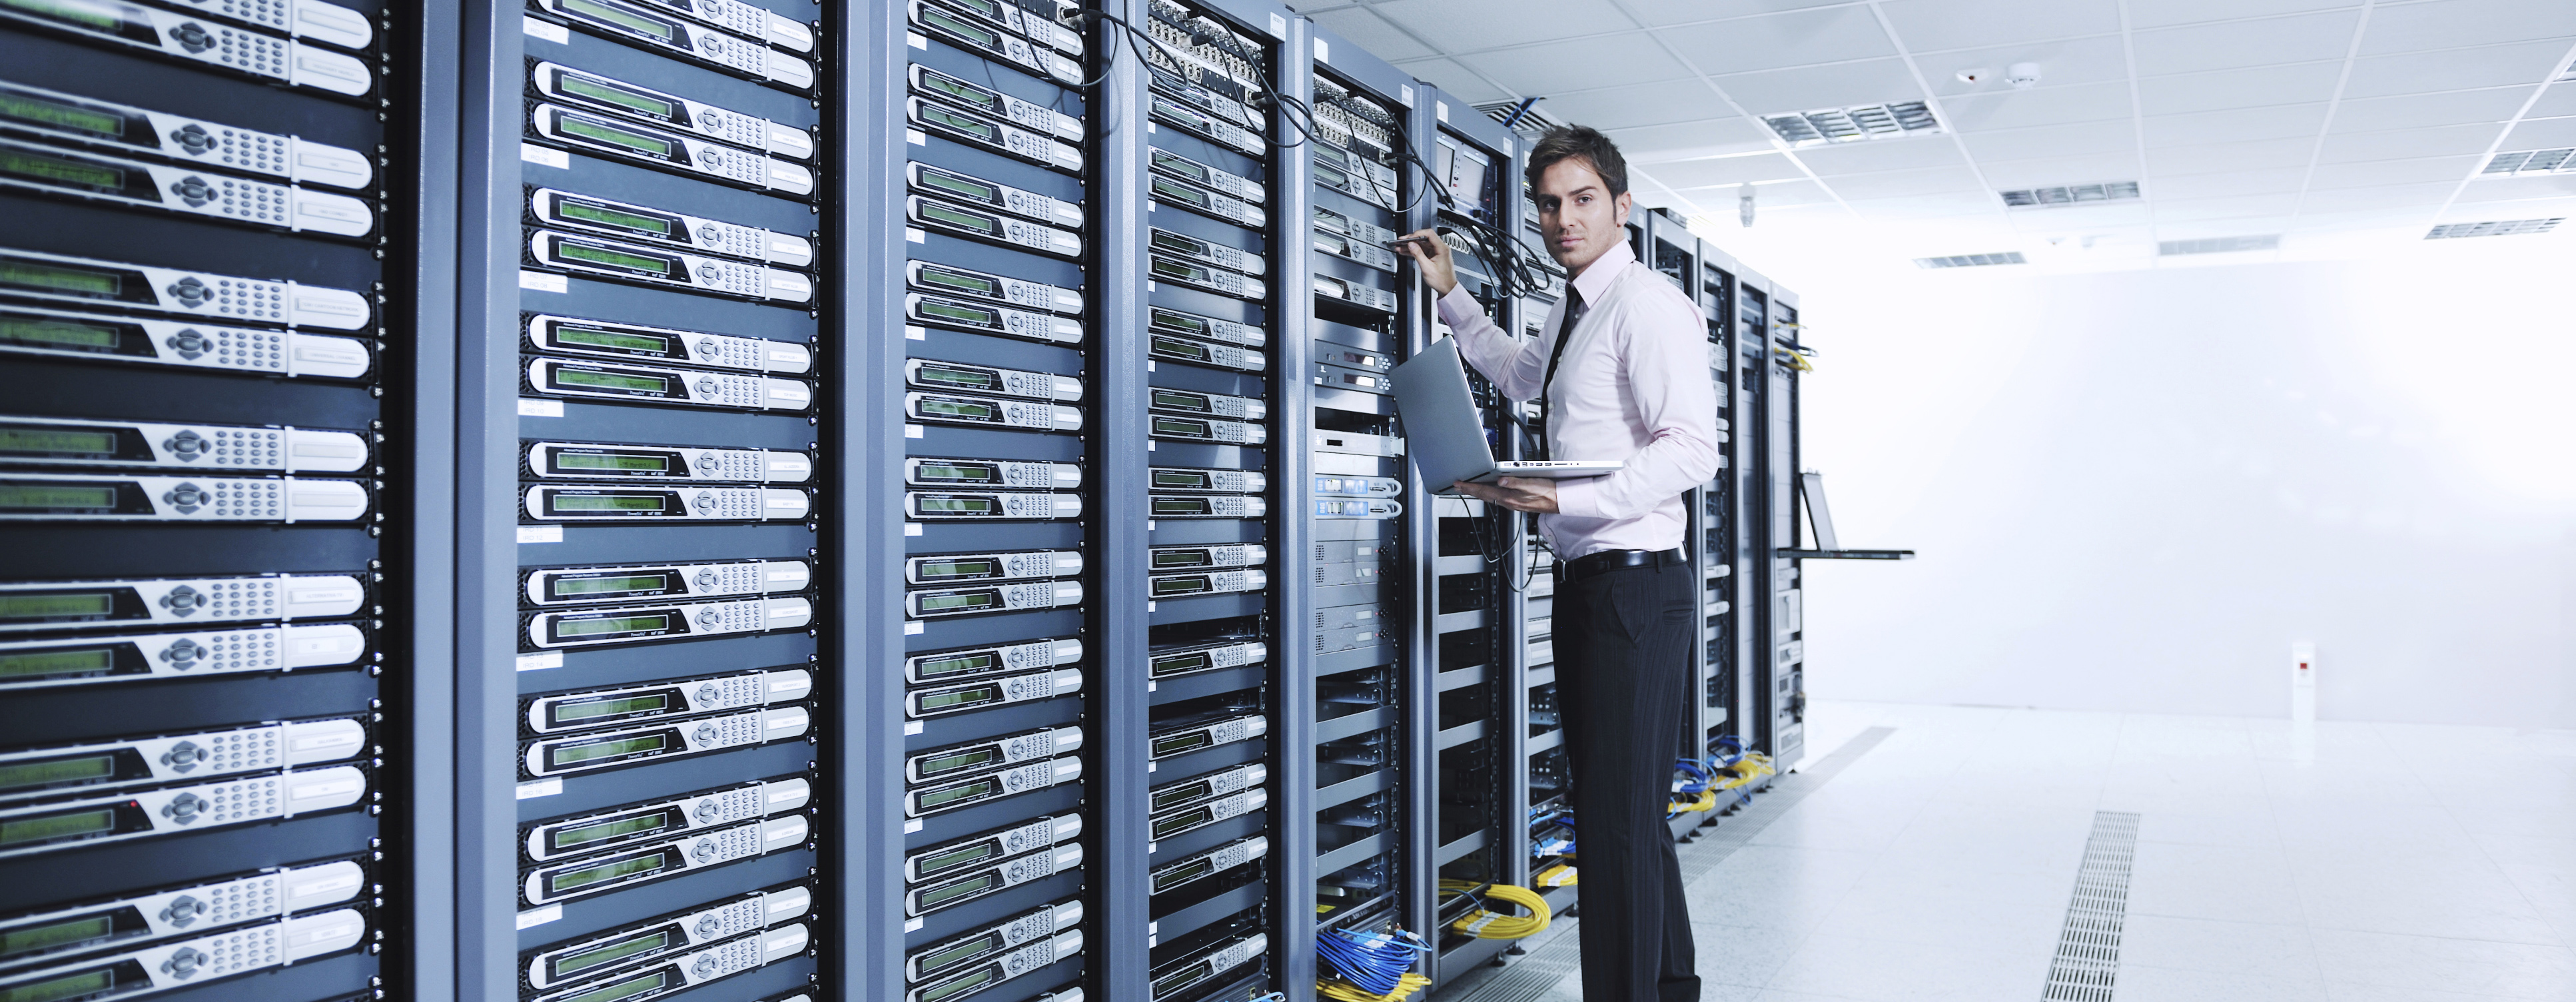 Server Room Photography : States up their data center game statetech magazine